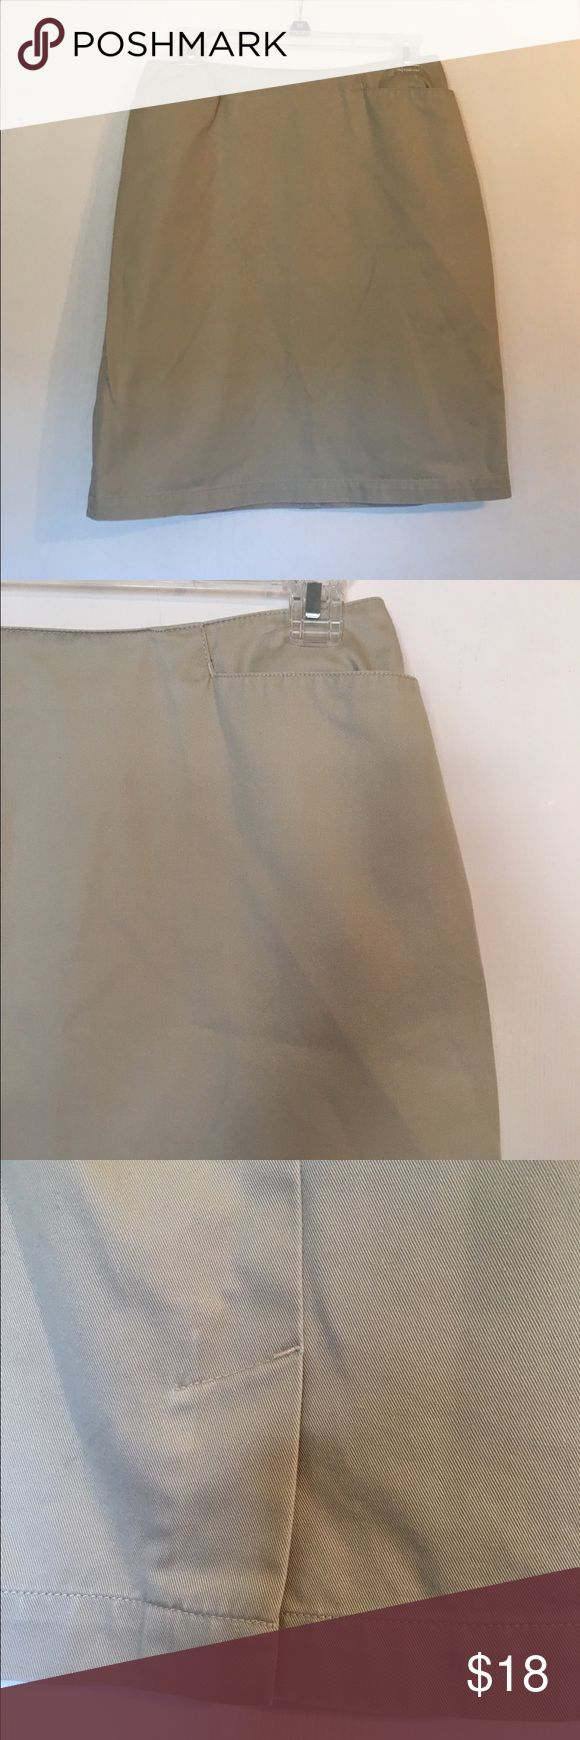 """Talbots 100% cotton khaki pencil skirt 21"""" length: machine washable. Has two pockets in front. Zipper and hook back closure. Like new condition. 3.5"""" slit in back. Talbots Skirts Pencil"""